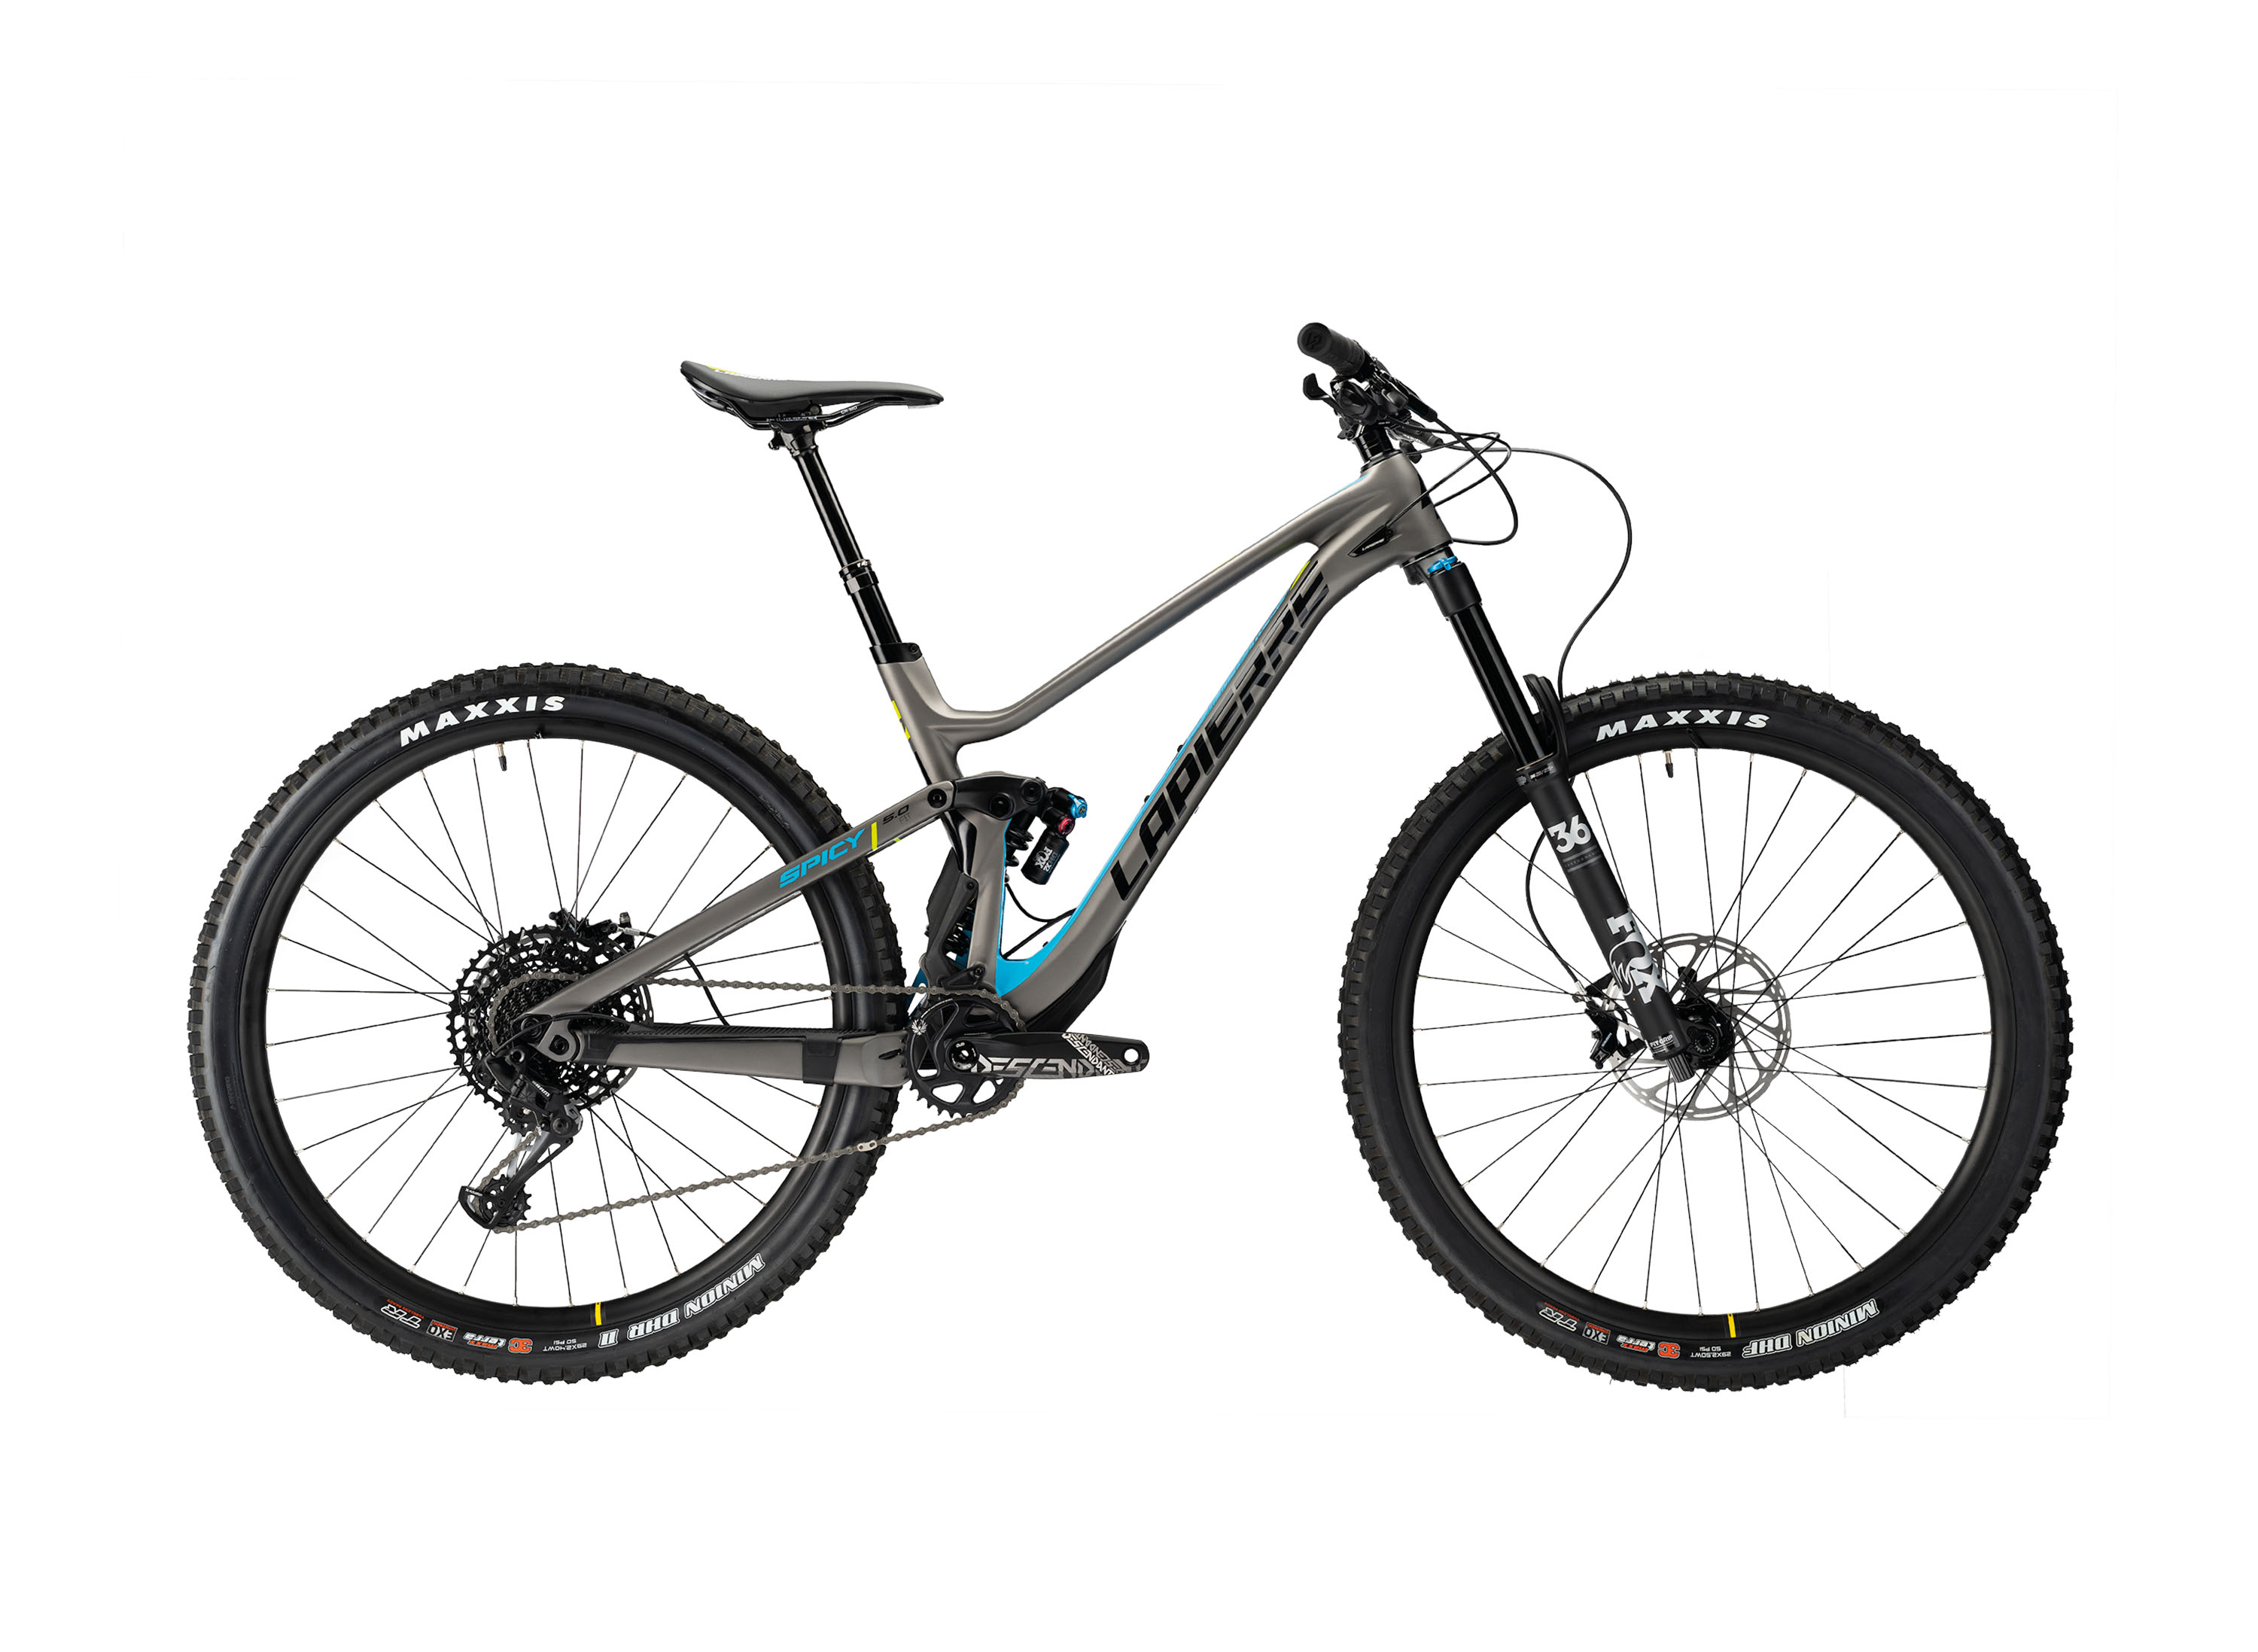 Lapierre Spicy 5.0 29